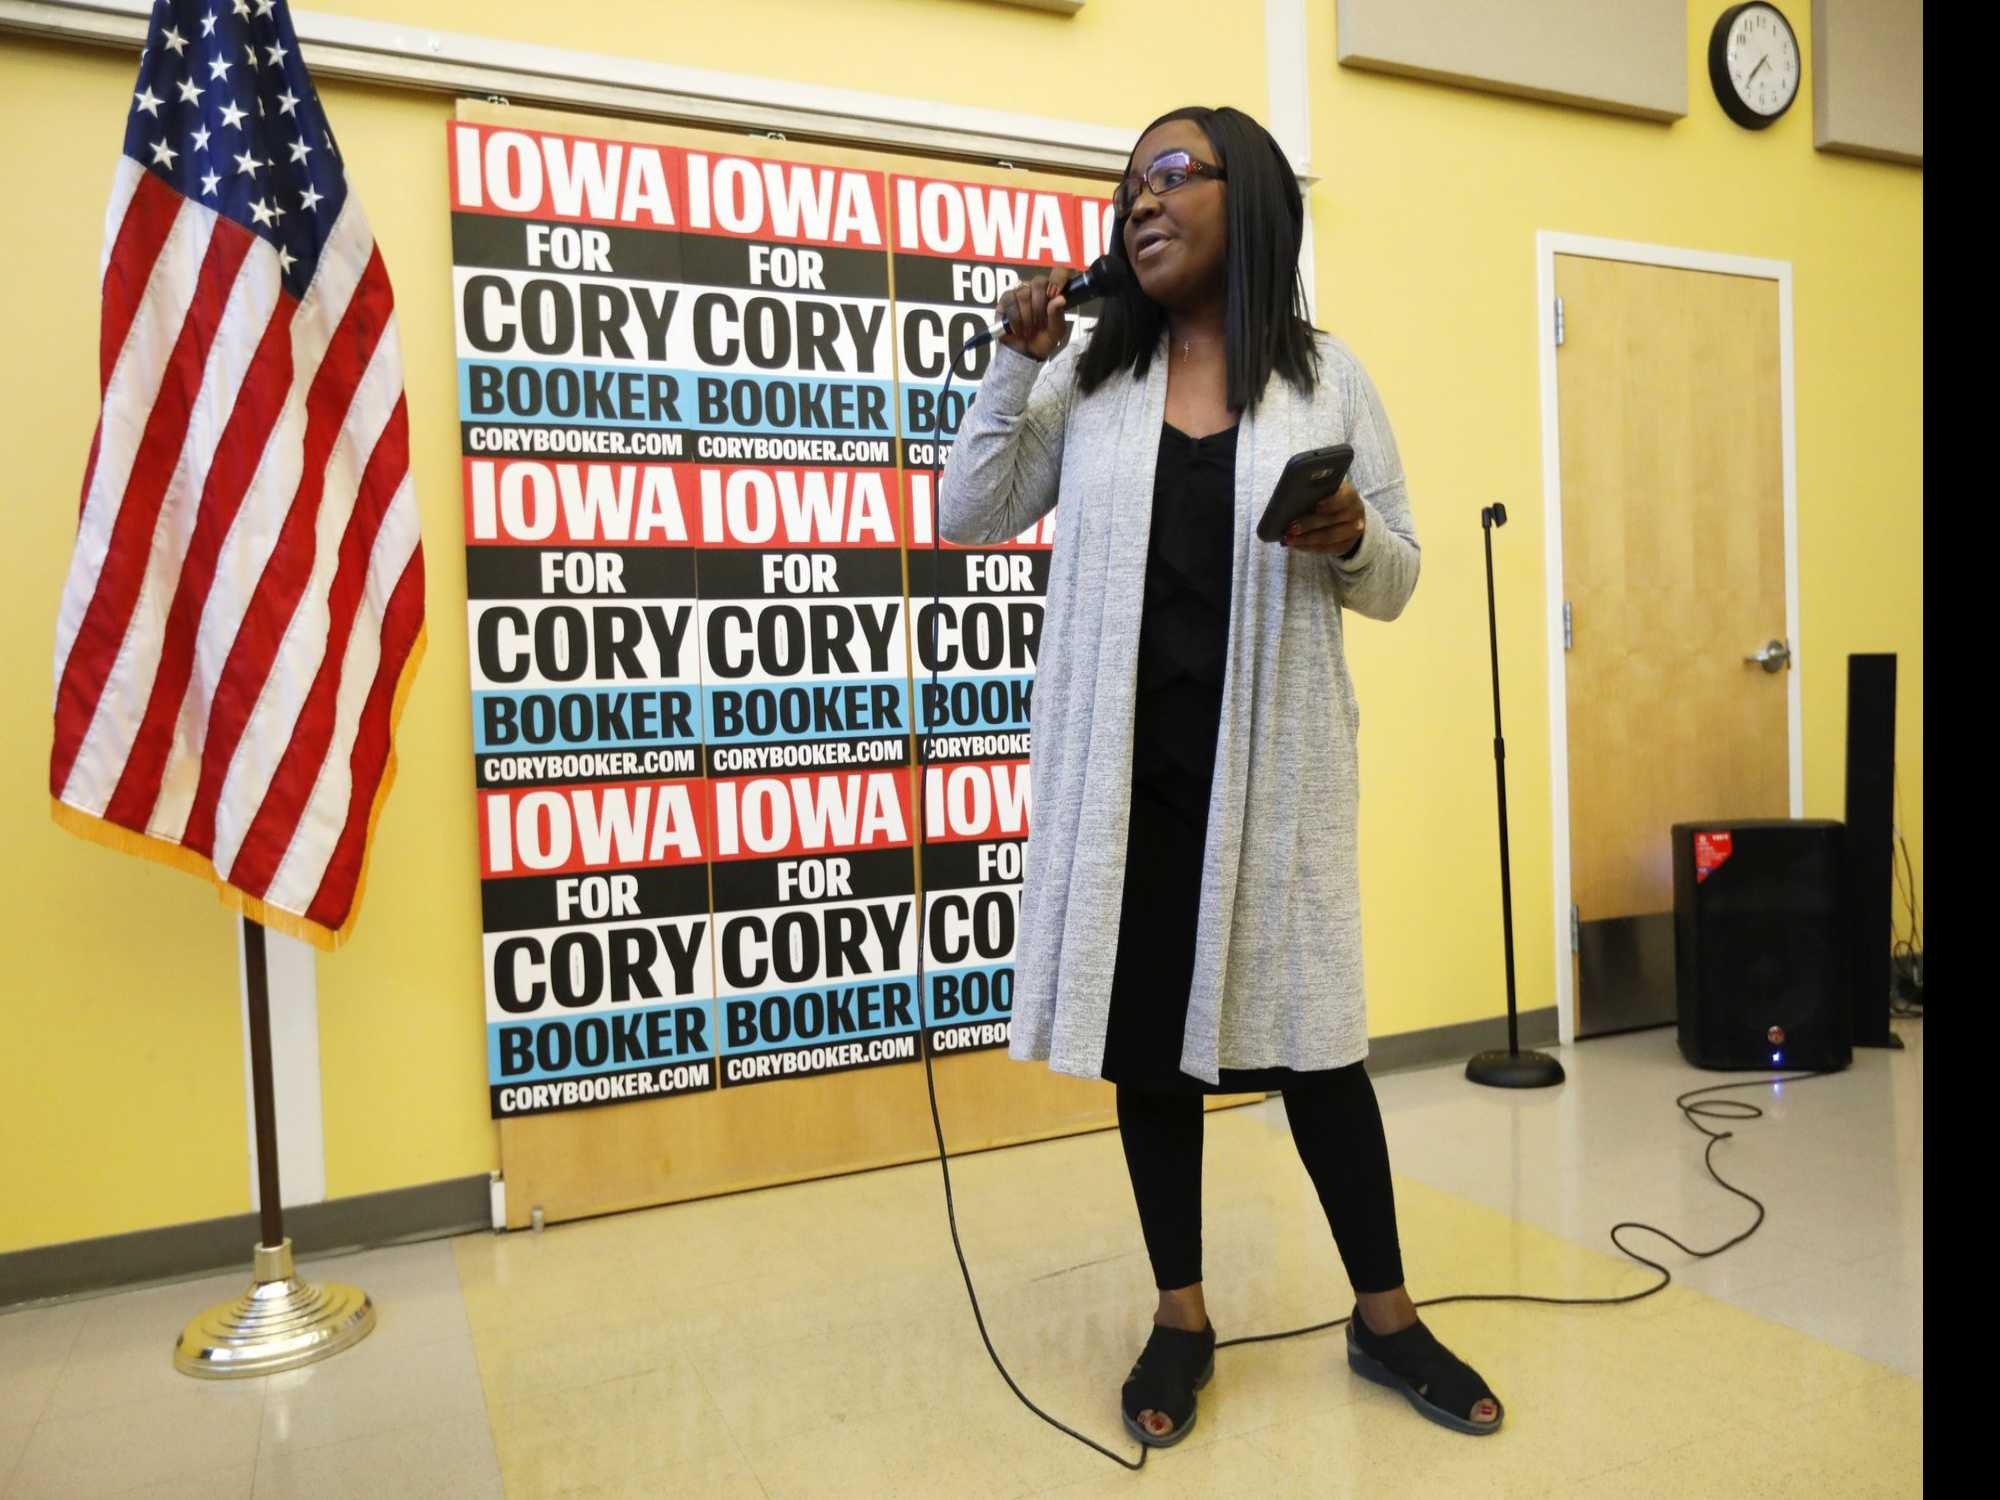 Black Dems in Vastly White Iowa Poised to Play 2020 Role